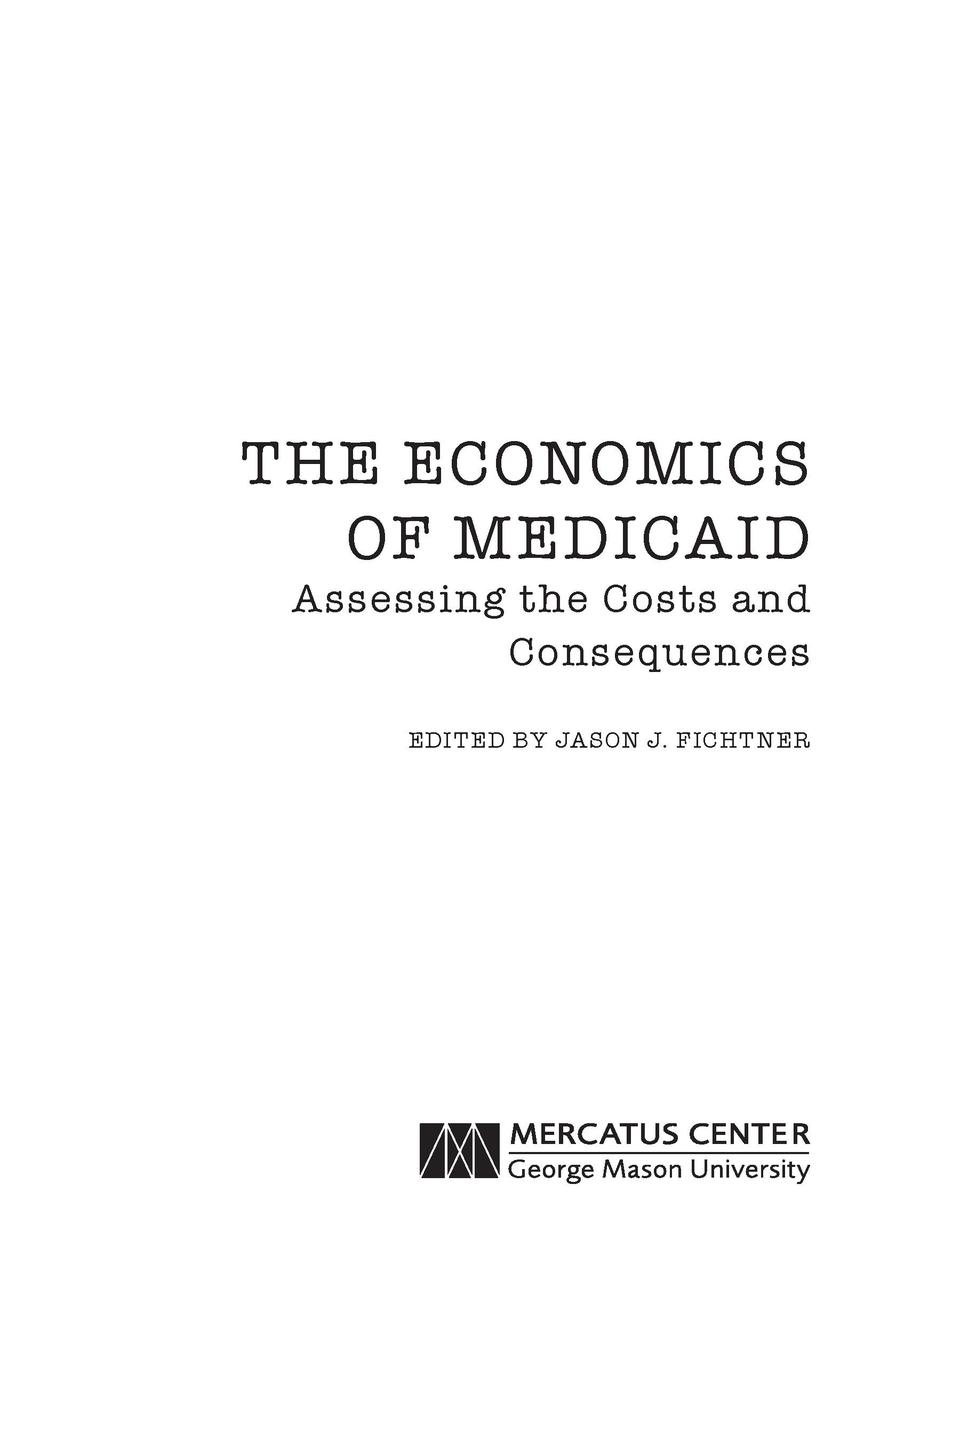 THE ECONOMICS OF MEDICAID  Assessing the Costs and Consequences EDITED BY JASON J. FICHTN ER